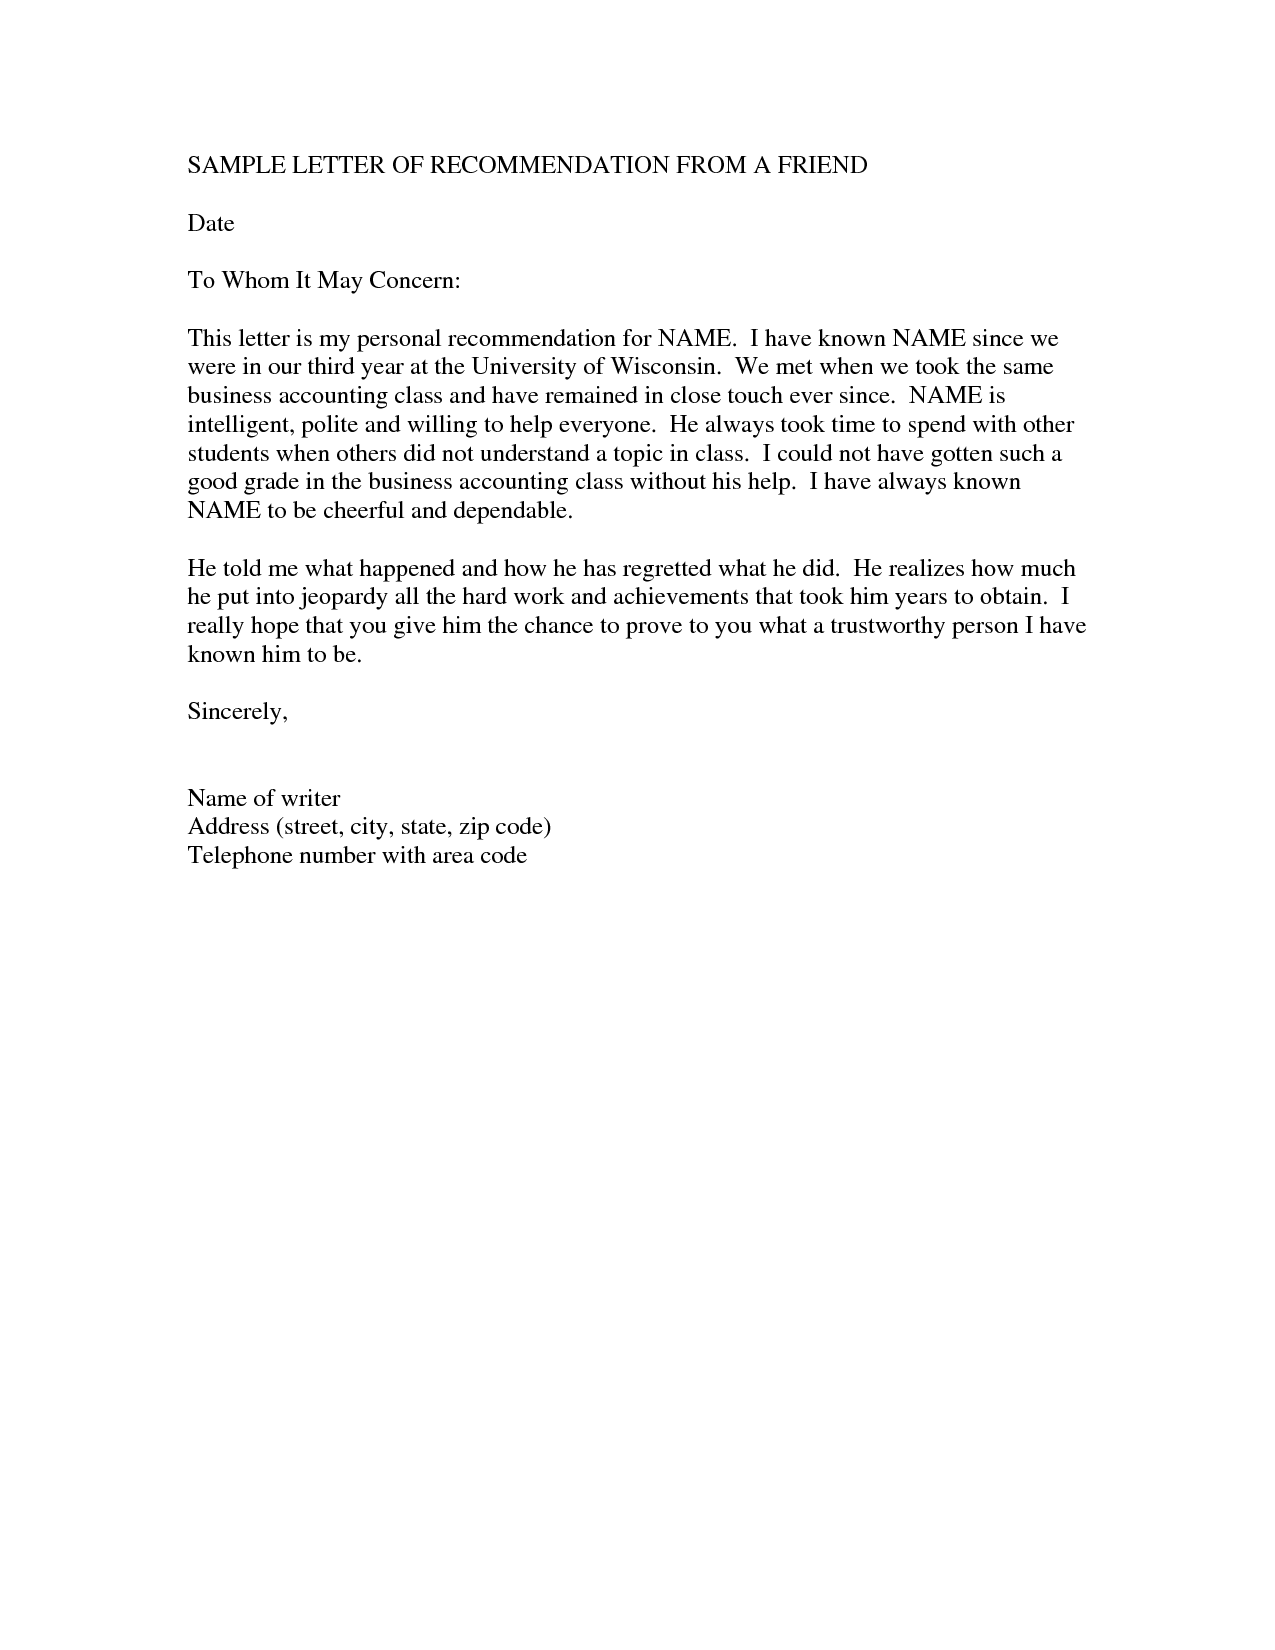 Letter For A Friend For Immigration from www.printablepapertemplates.com